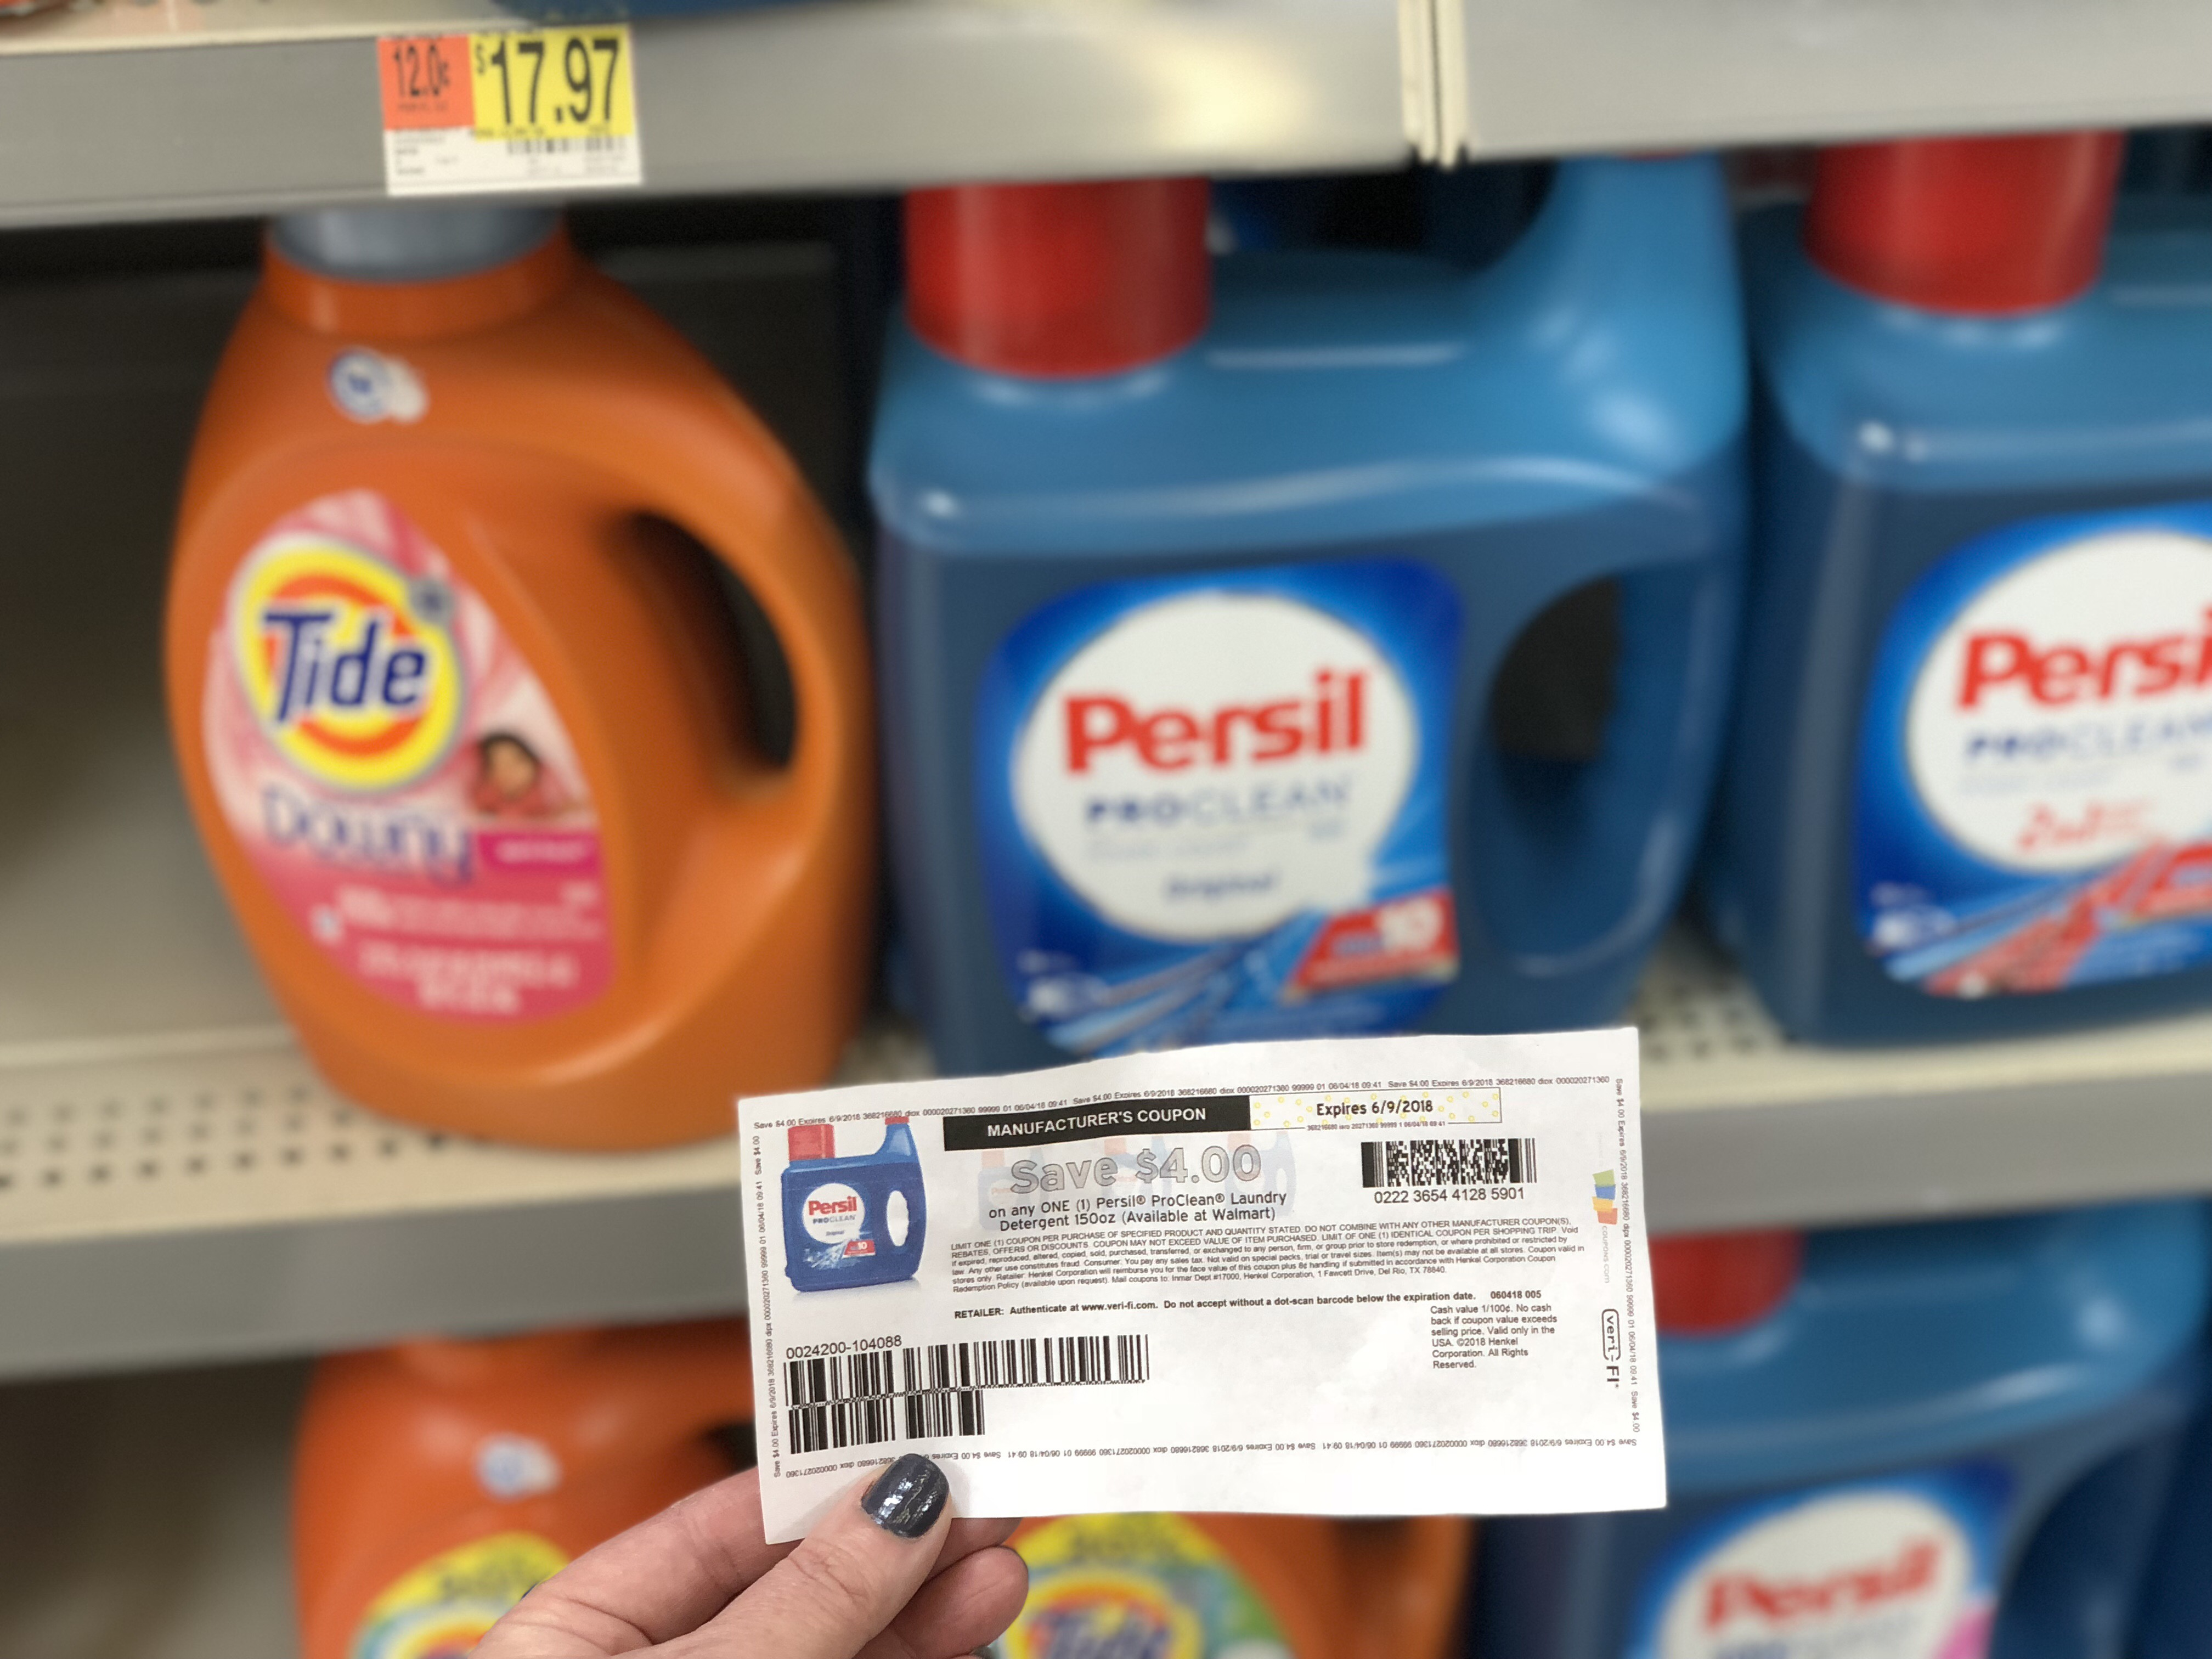 photo regarding Persil Printable Coupon referred to as Dont Pass up This $4/1 Persil ProClean Laundry Detergent